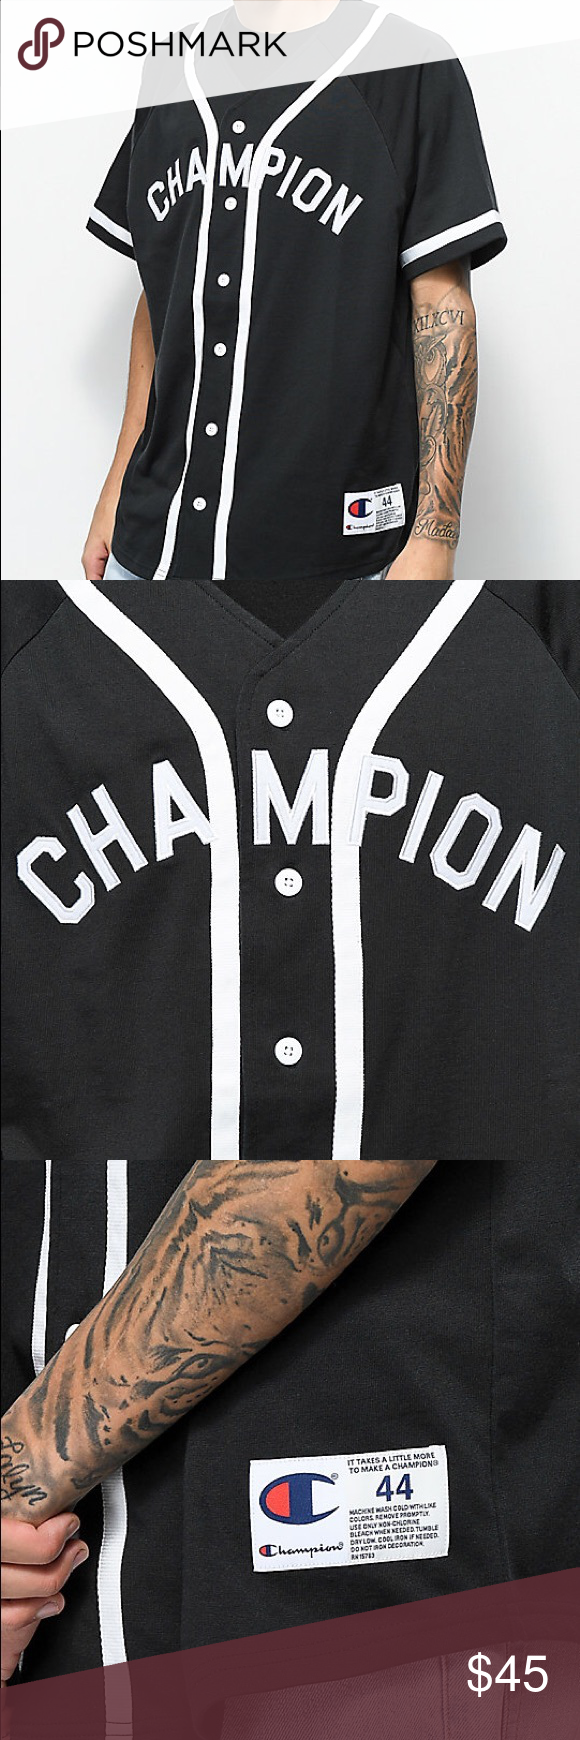 57ea4ec44bdc champion braided baseball jersey champion braided baseball jersey Brand new  but no tags Champion Shirts